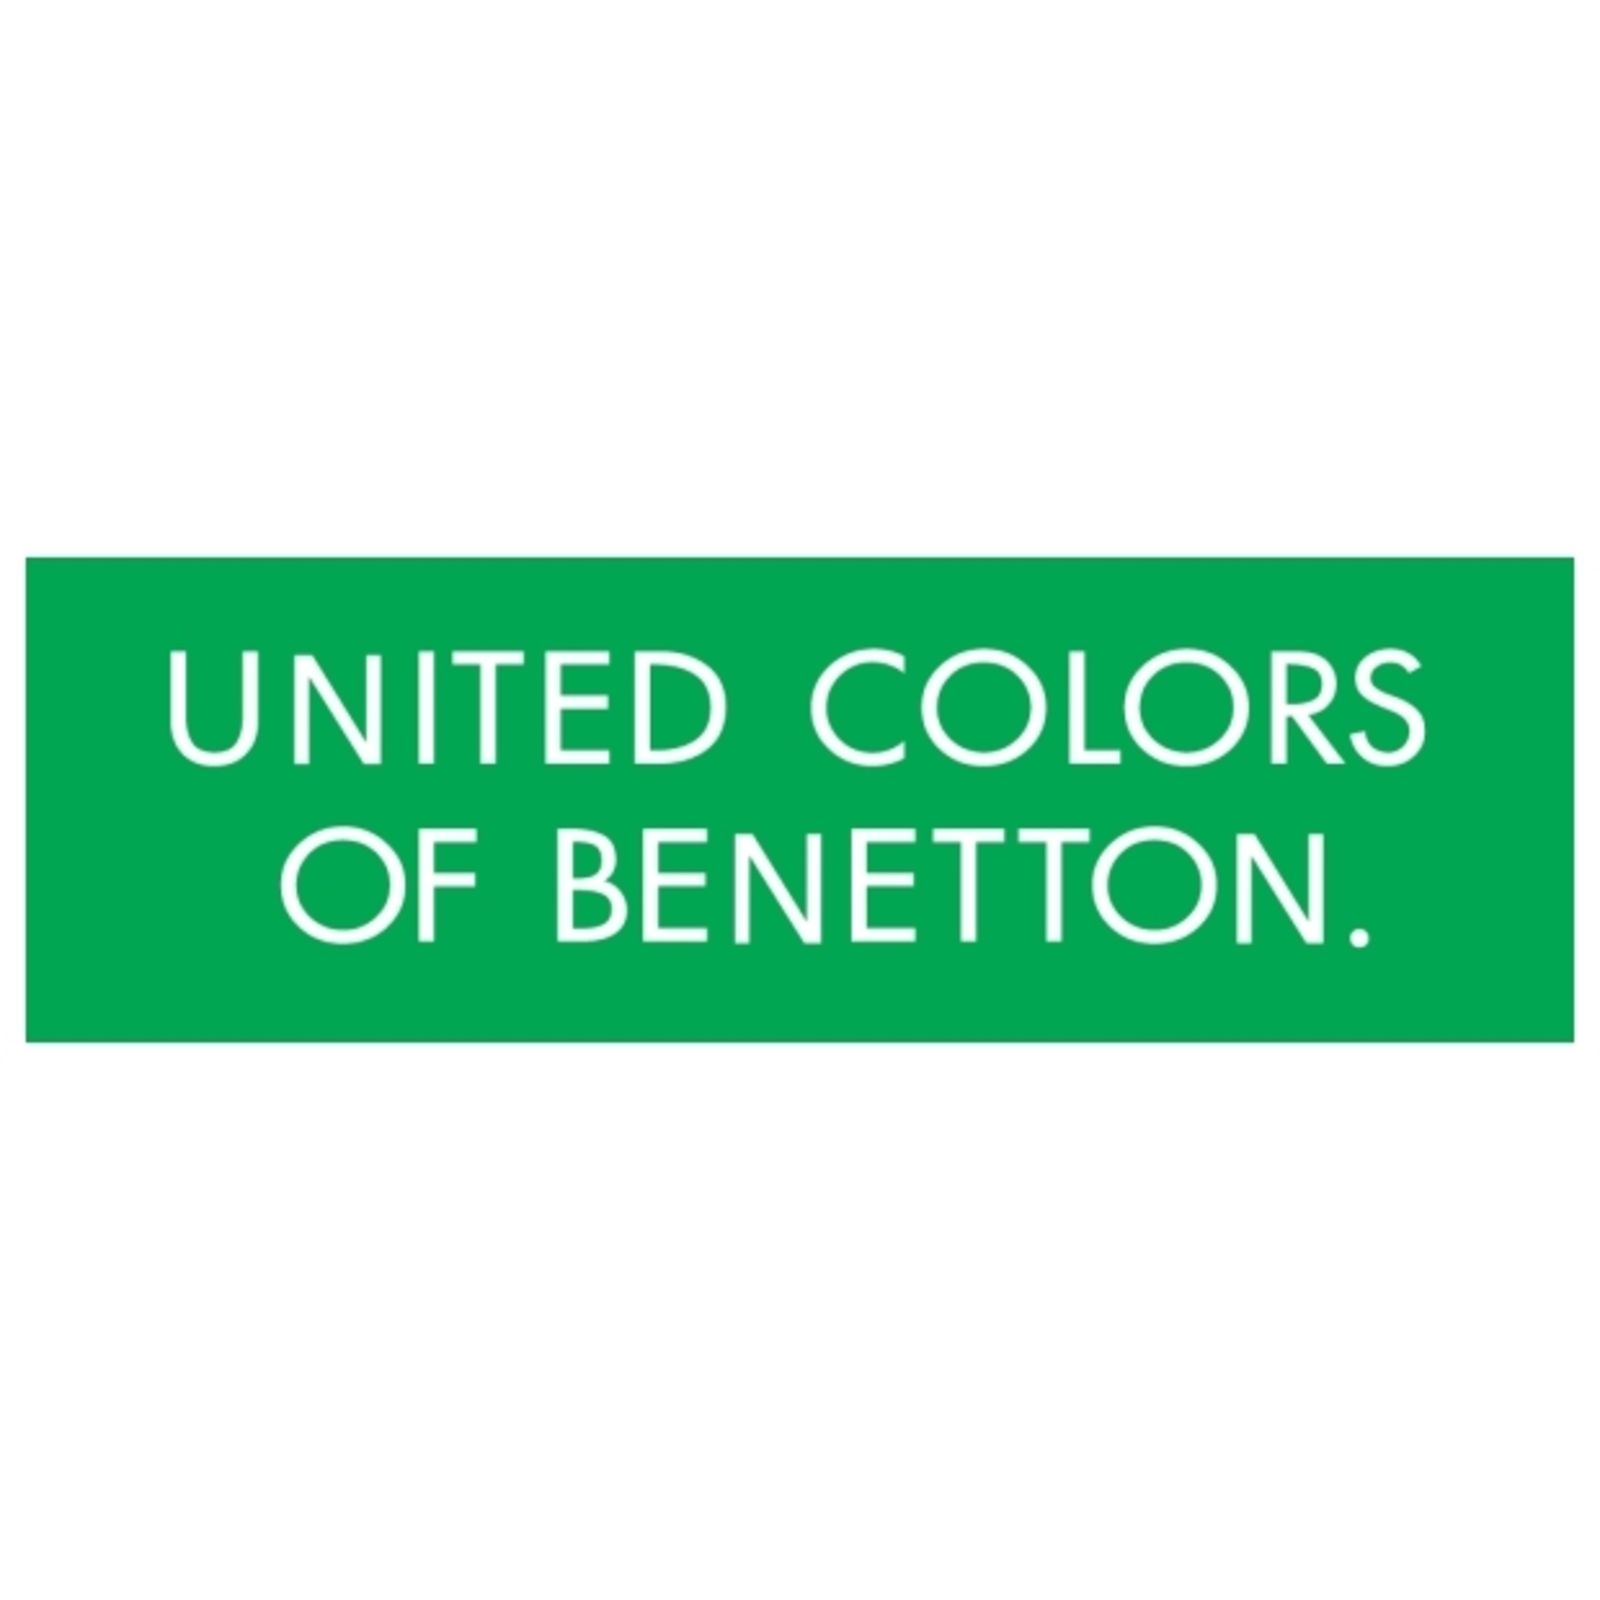 UNITED COLORS OF BENETTON (Изображение 1)